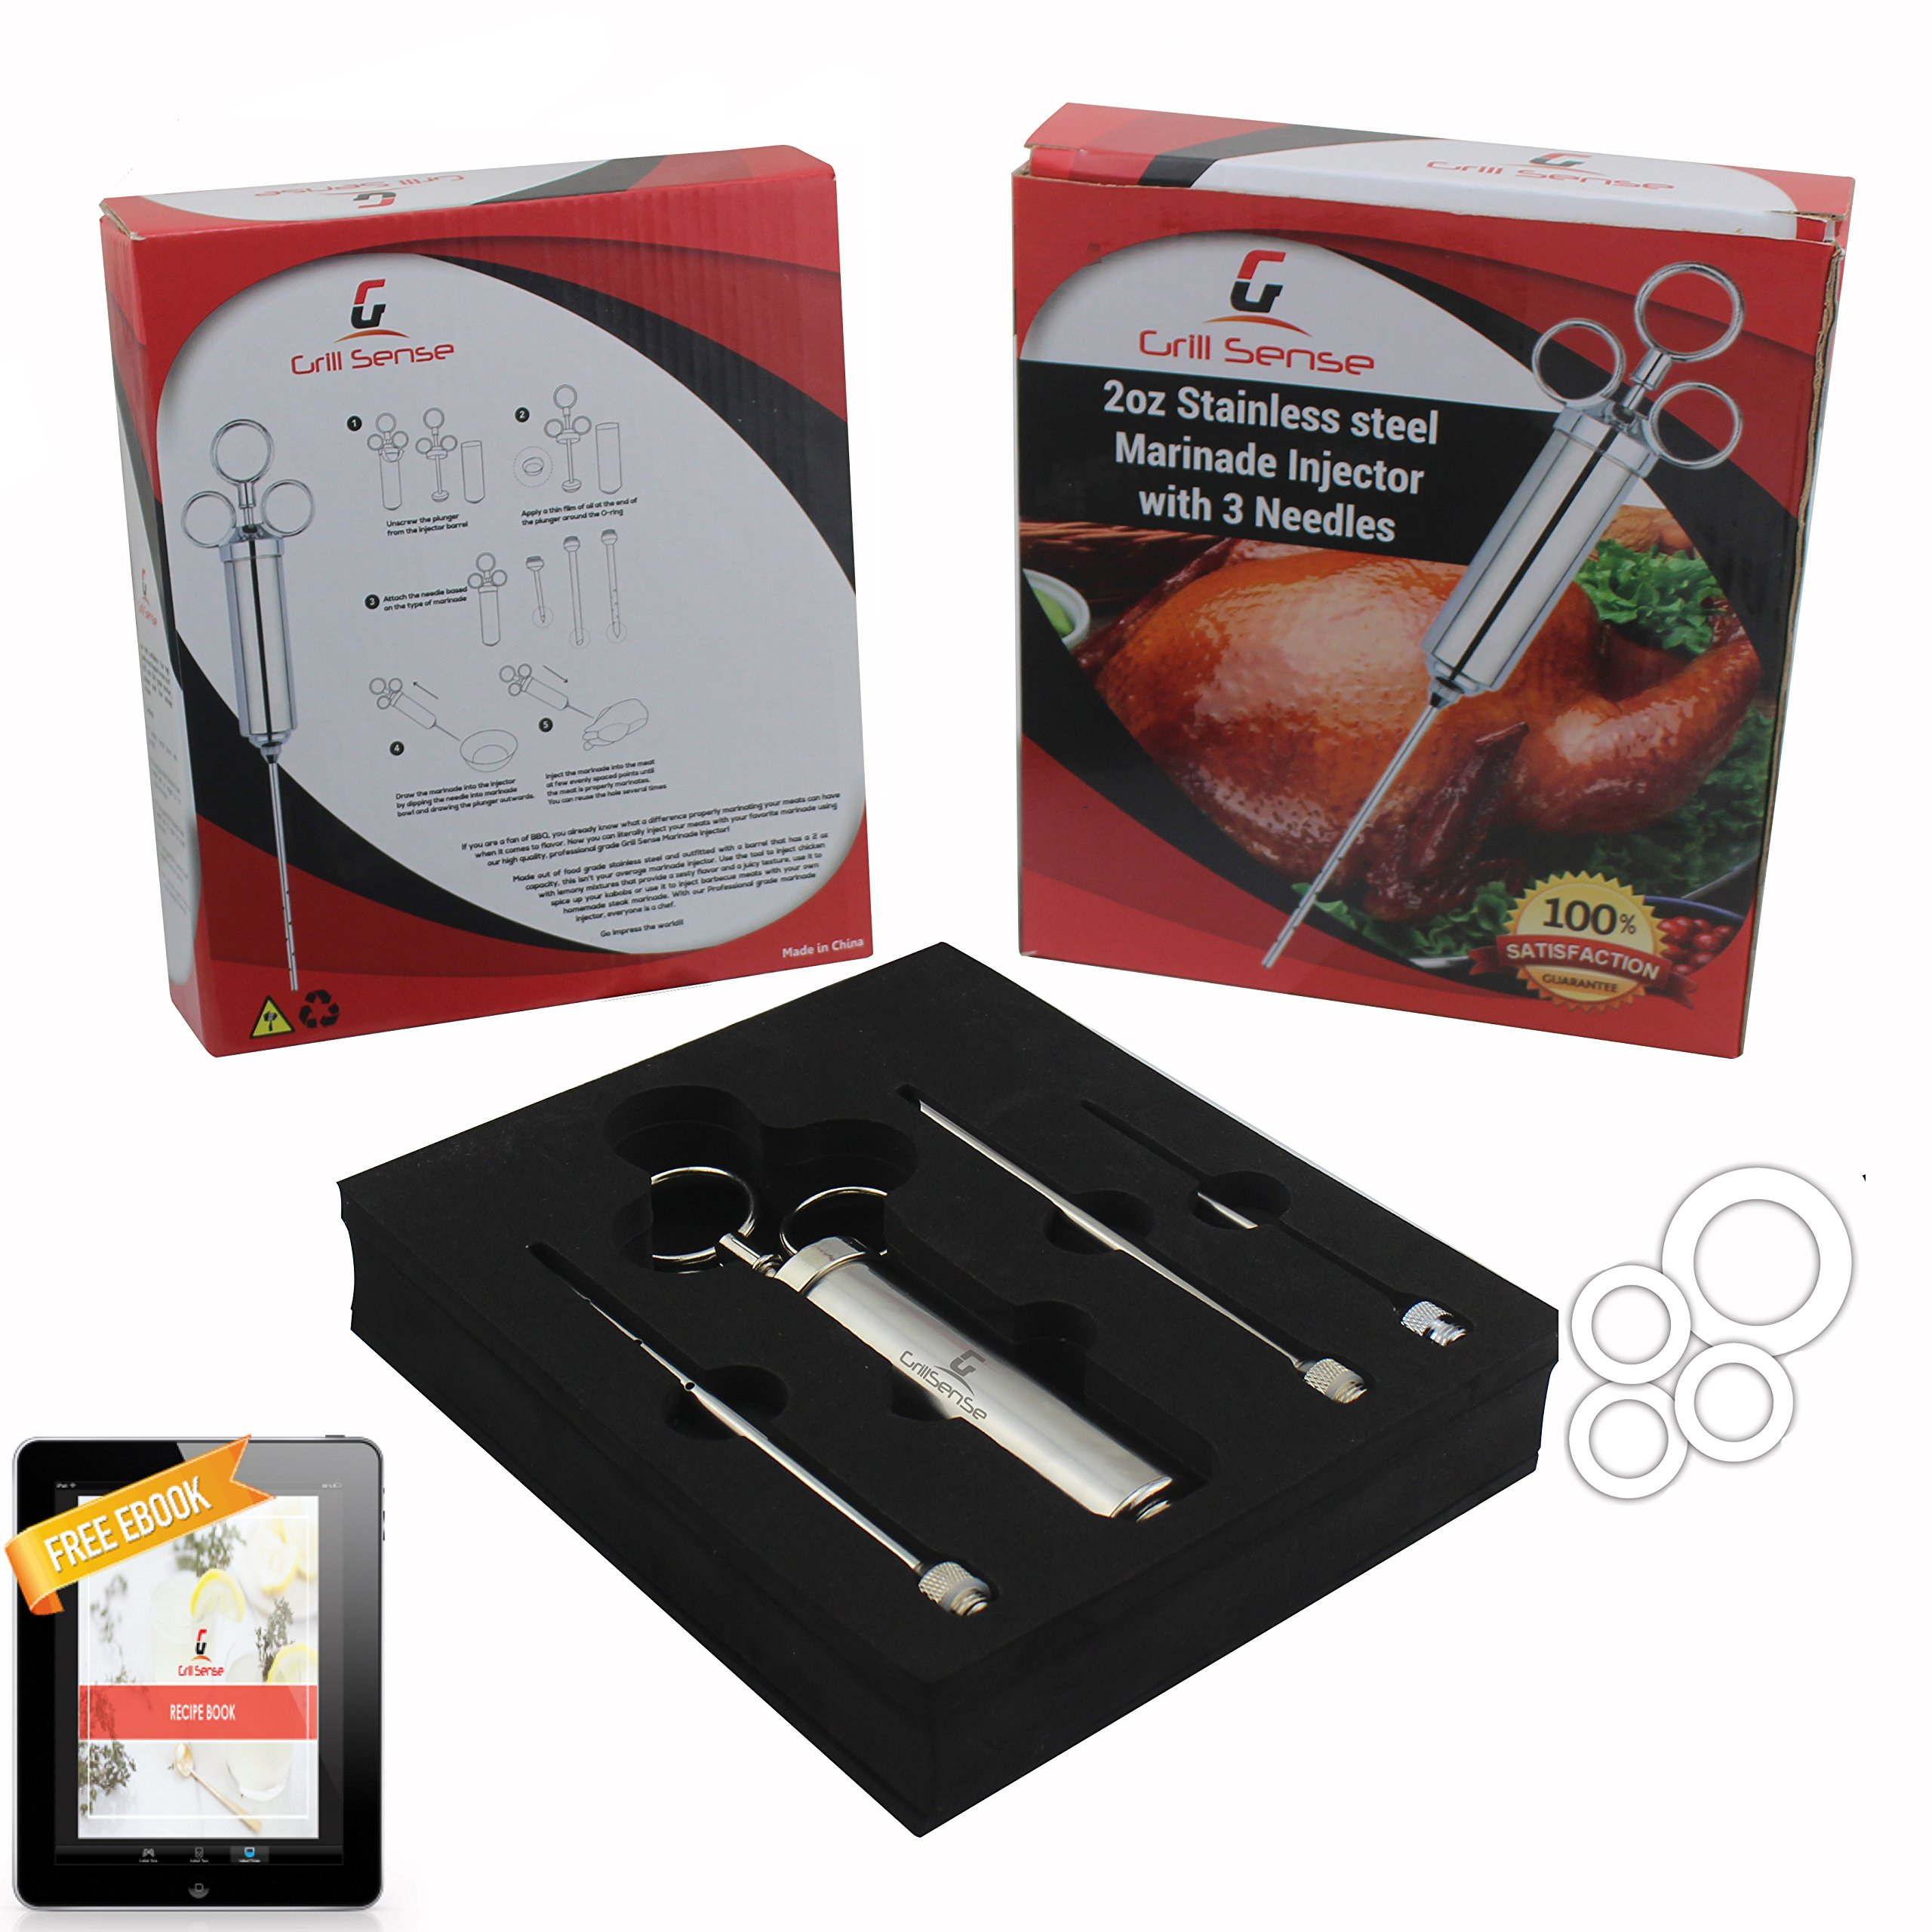 Grill Sense 304 Stainless Steel Meat Injector Kit with 2-oz Large Capacity Barrel and 3 Professional Marinade Needles by Online Promotion